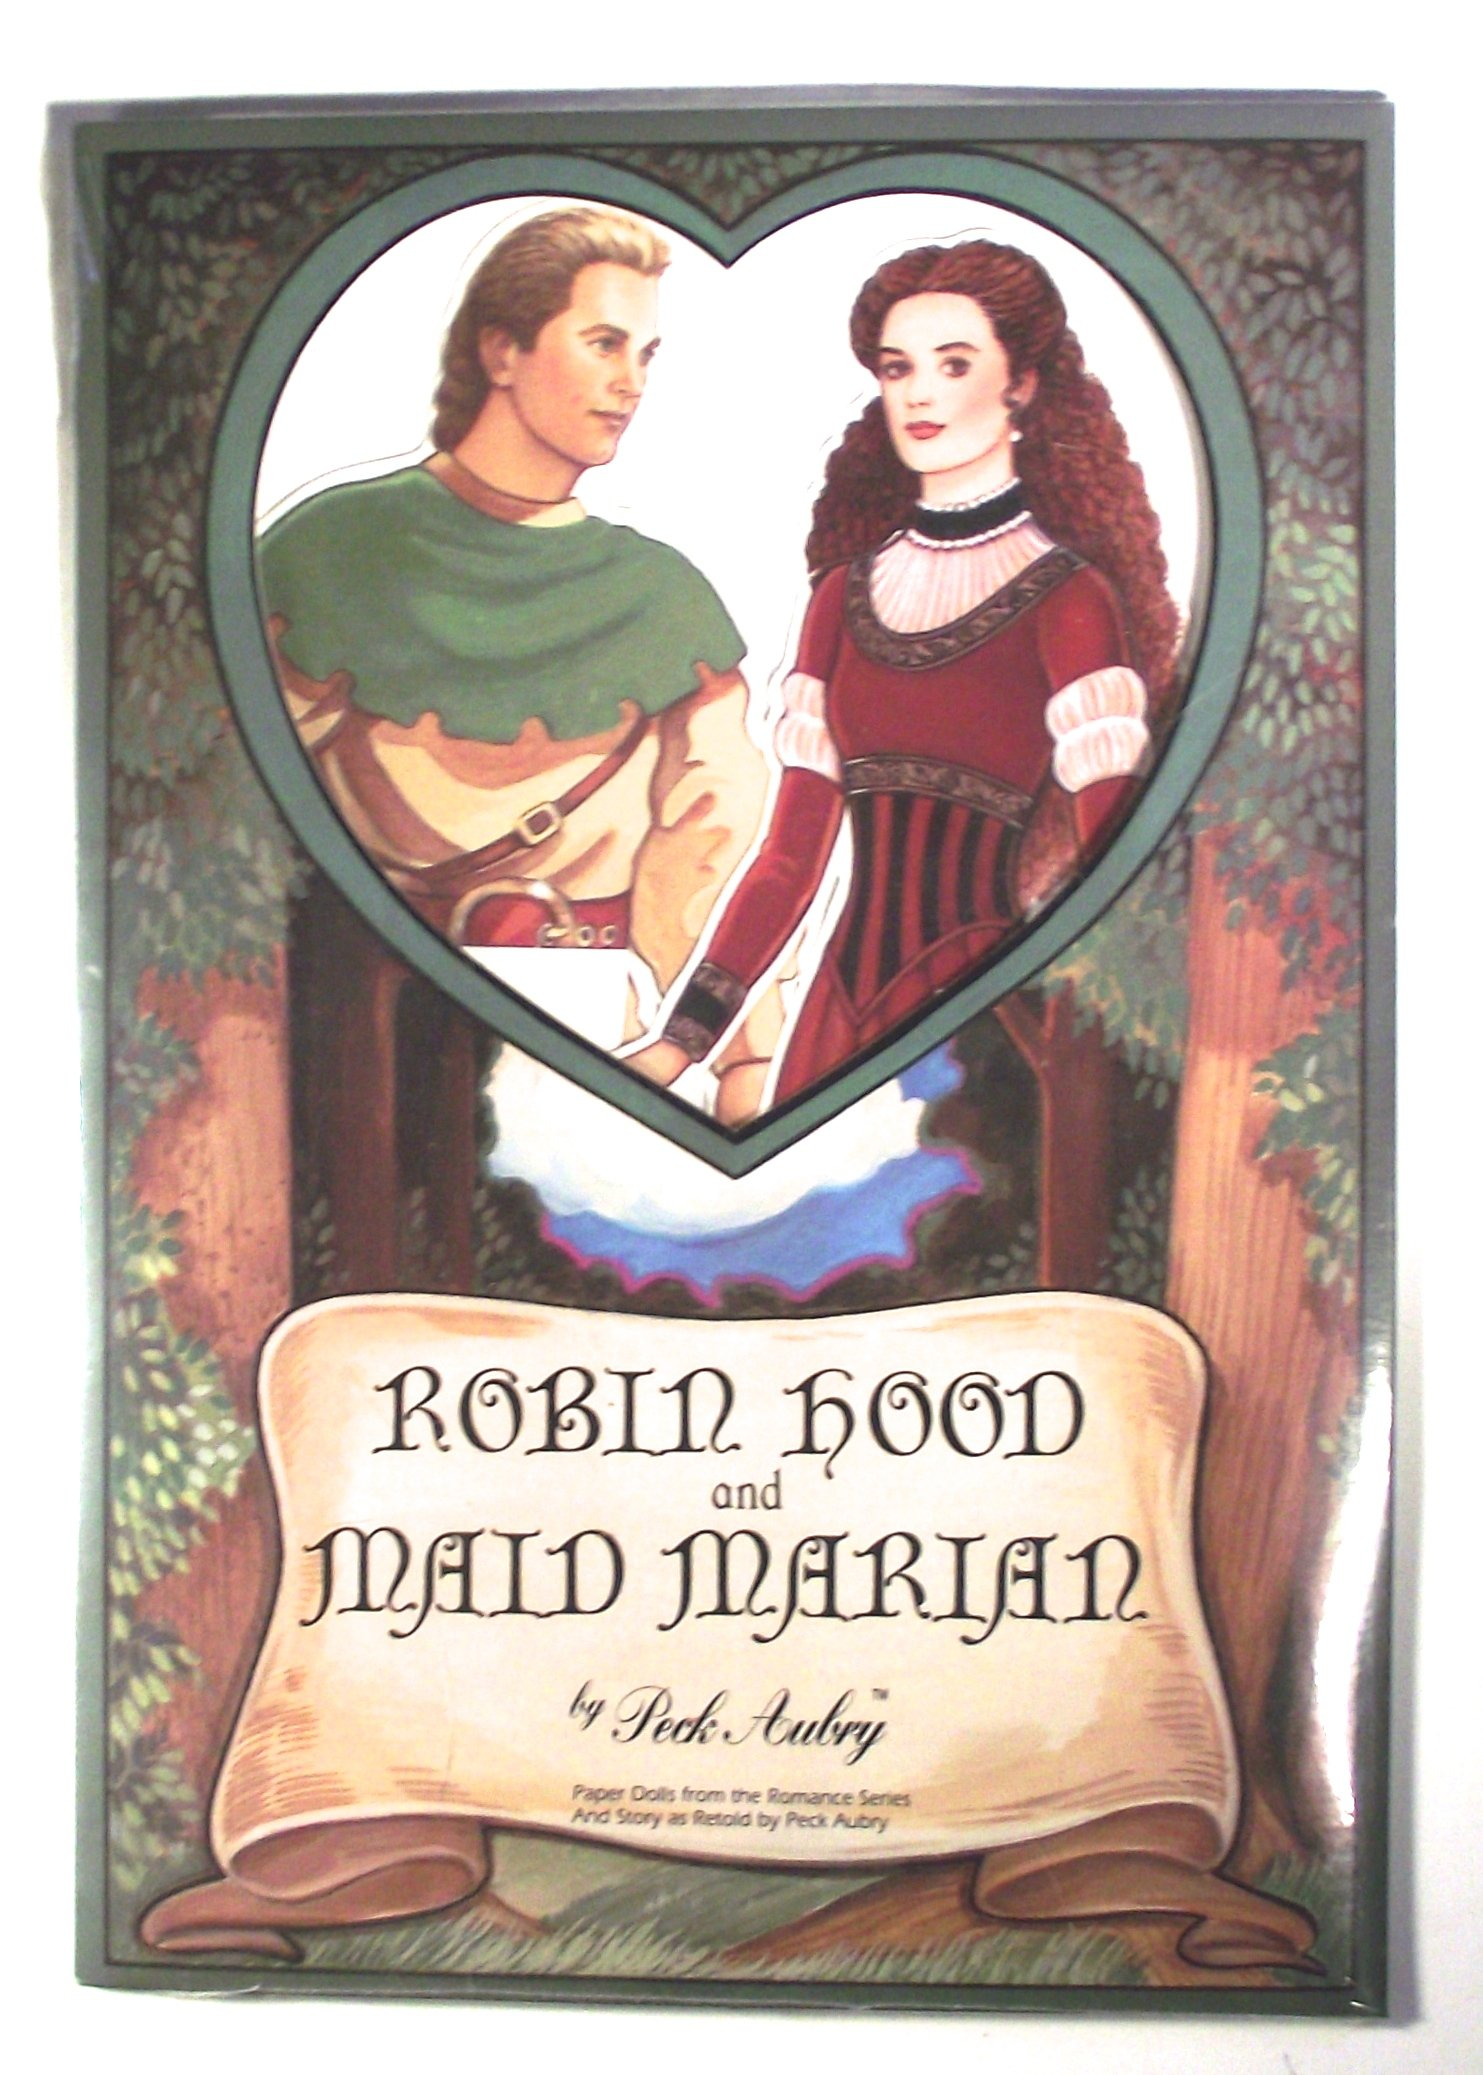 Robin Hood and Maid Marian Paper Dolls by Peck Aubry by Peck-Aubry